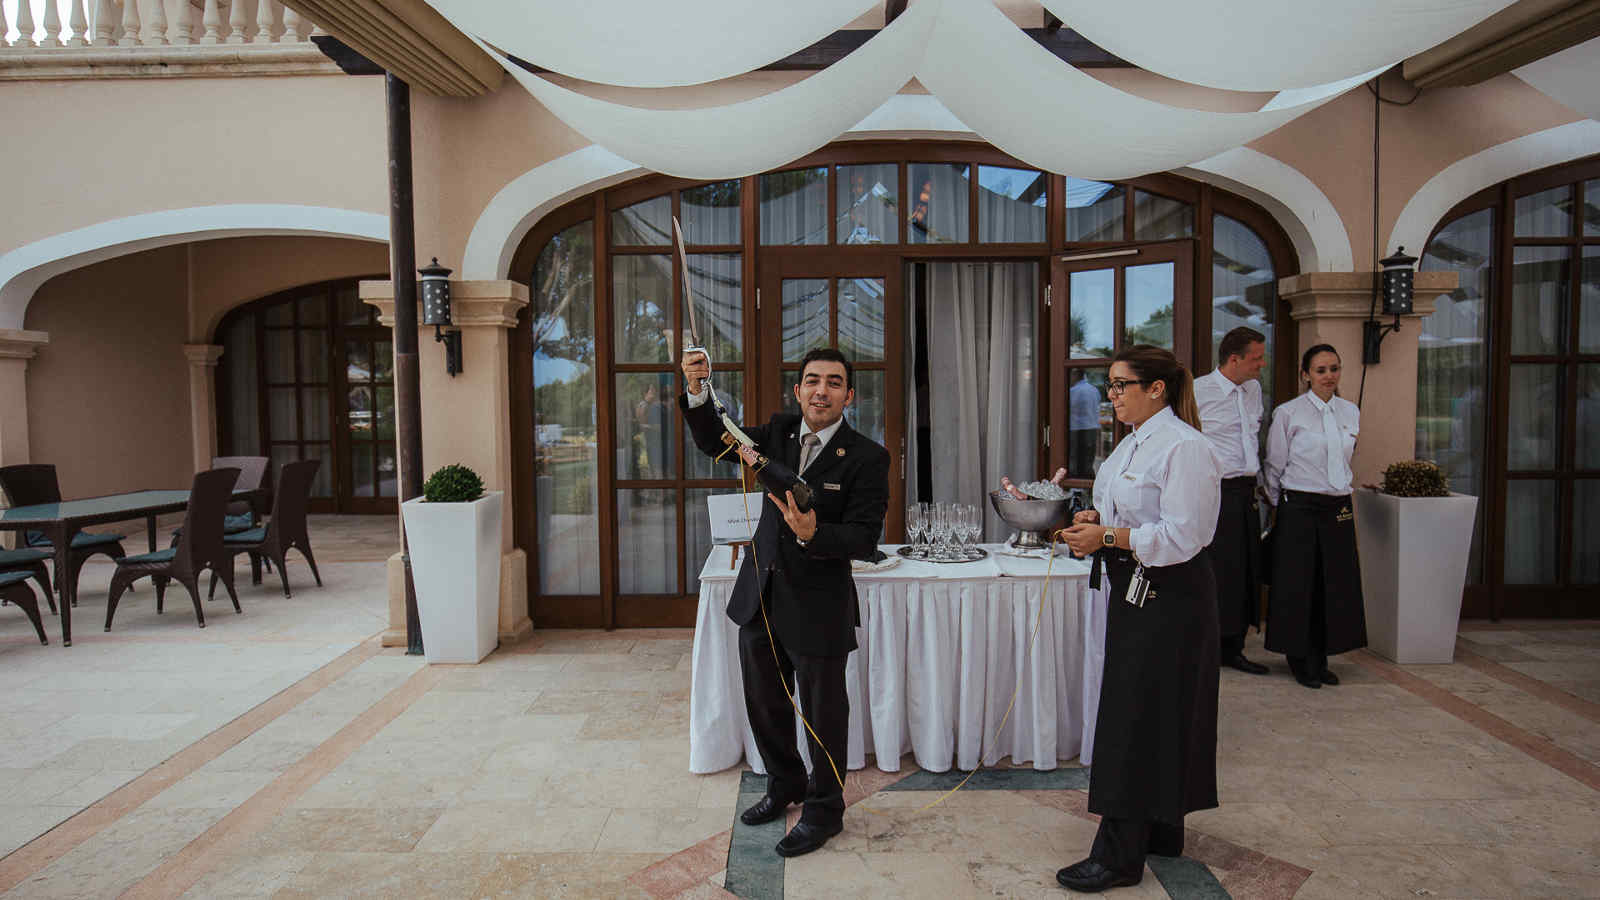 Champagne reception at the terrace bar of The St. Regis Mardavall